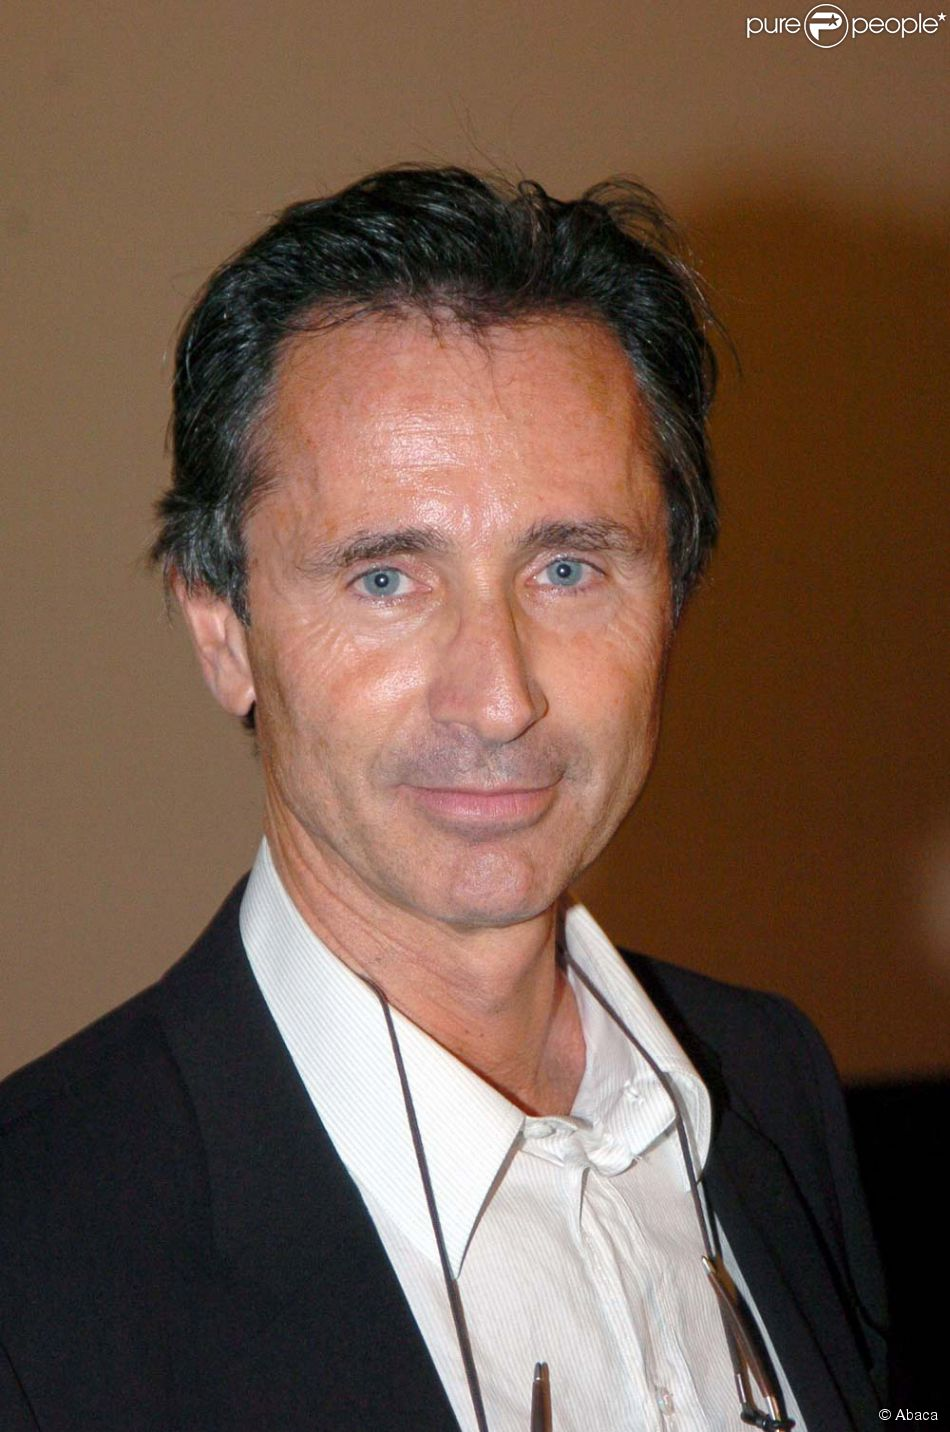 thierry lhermitte age